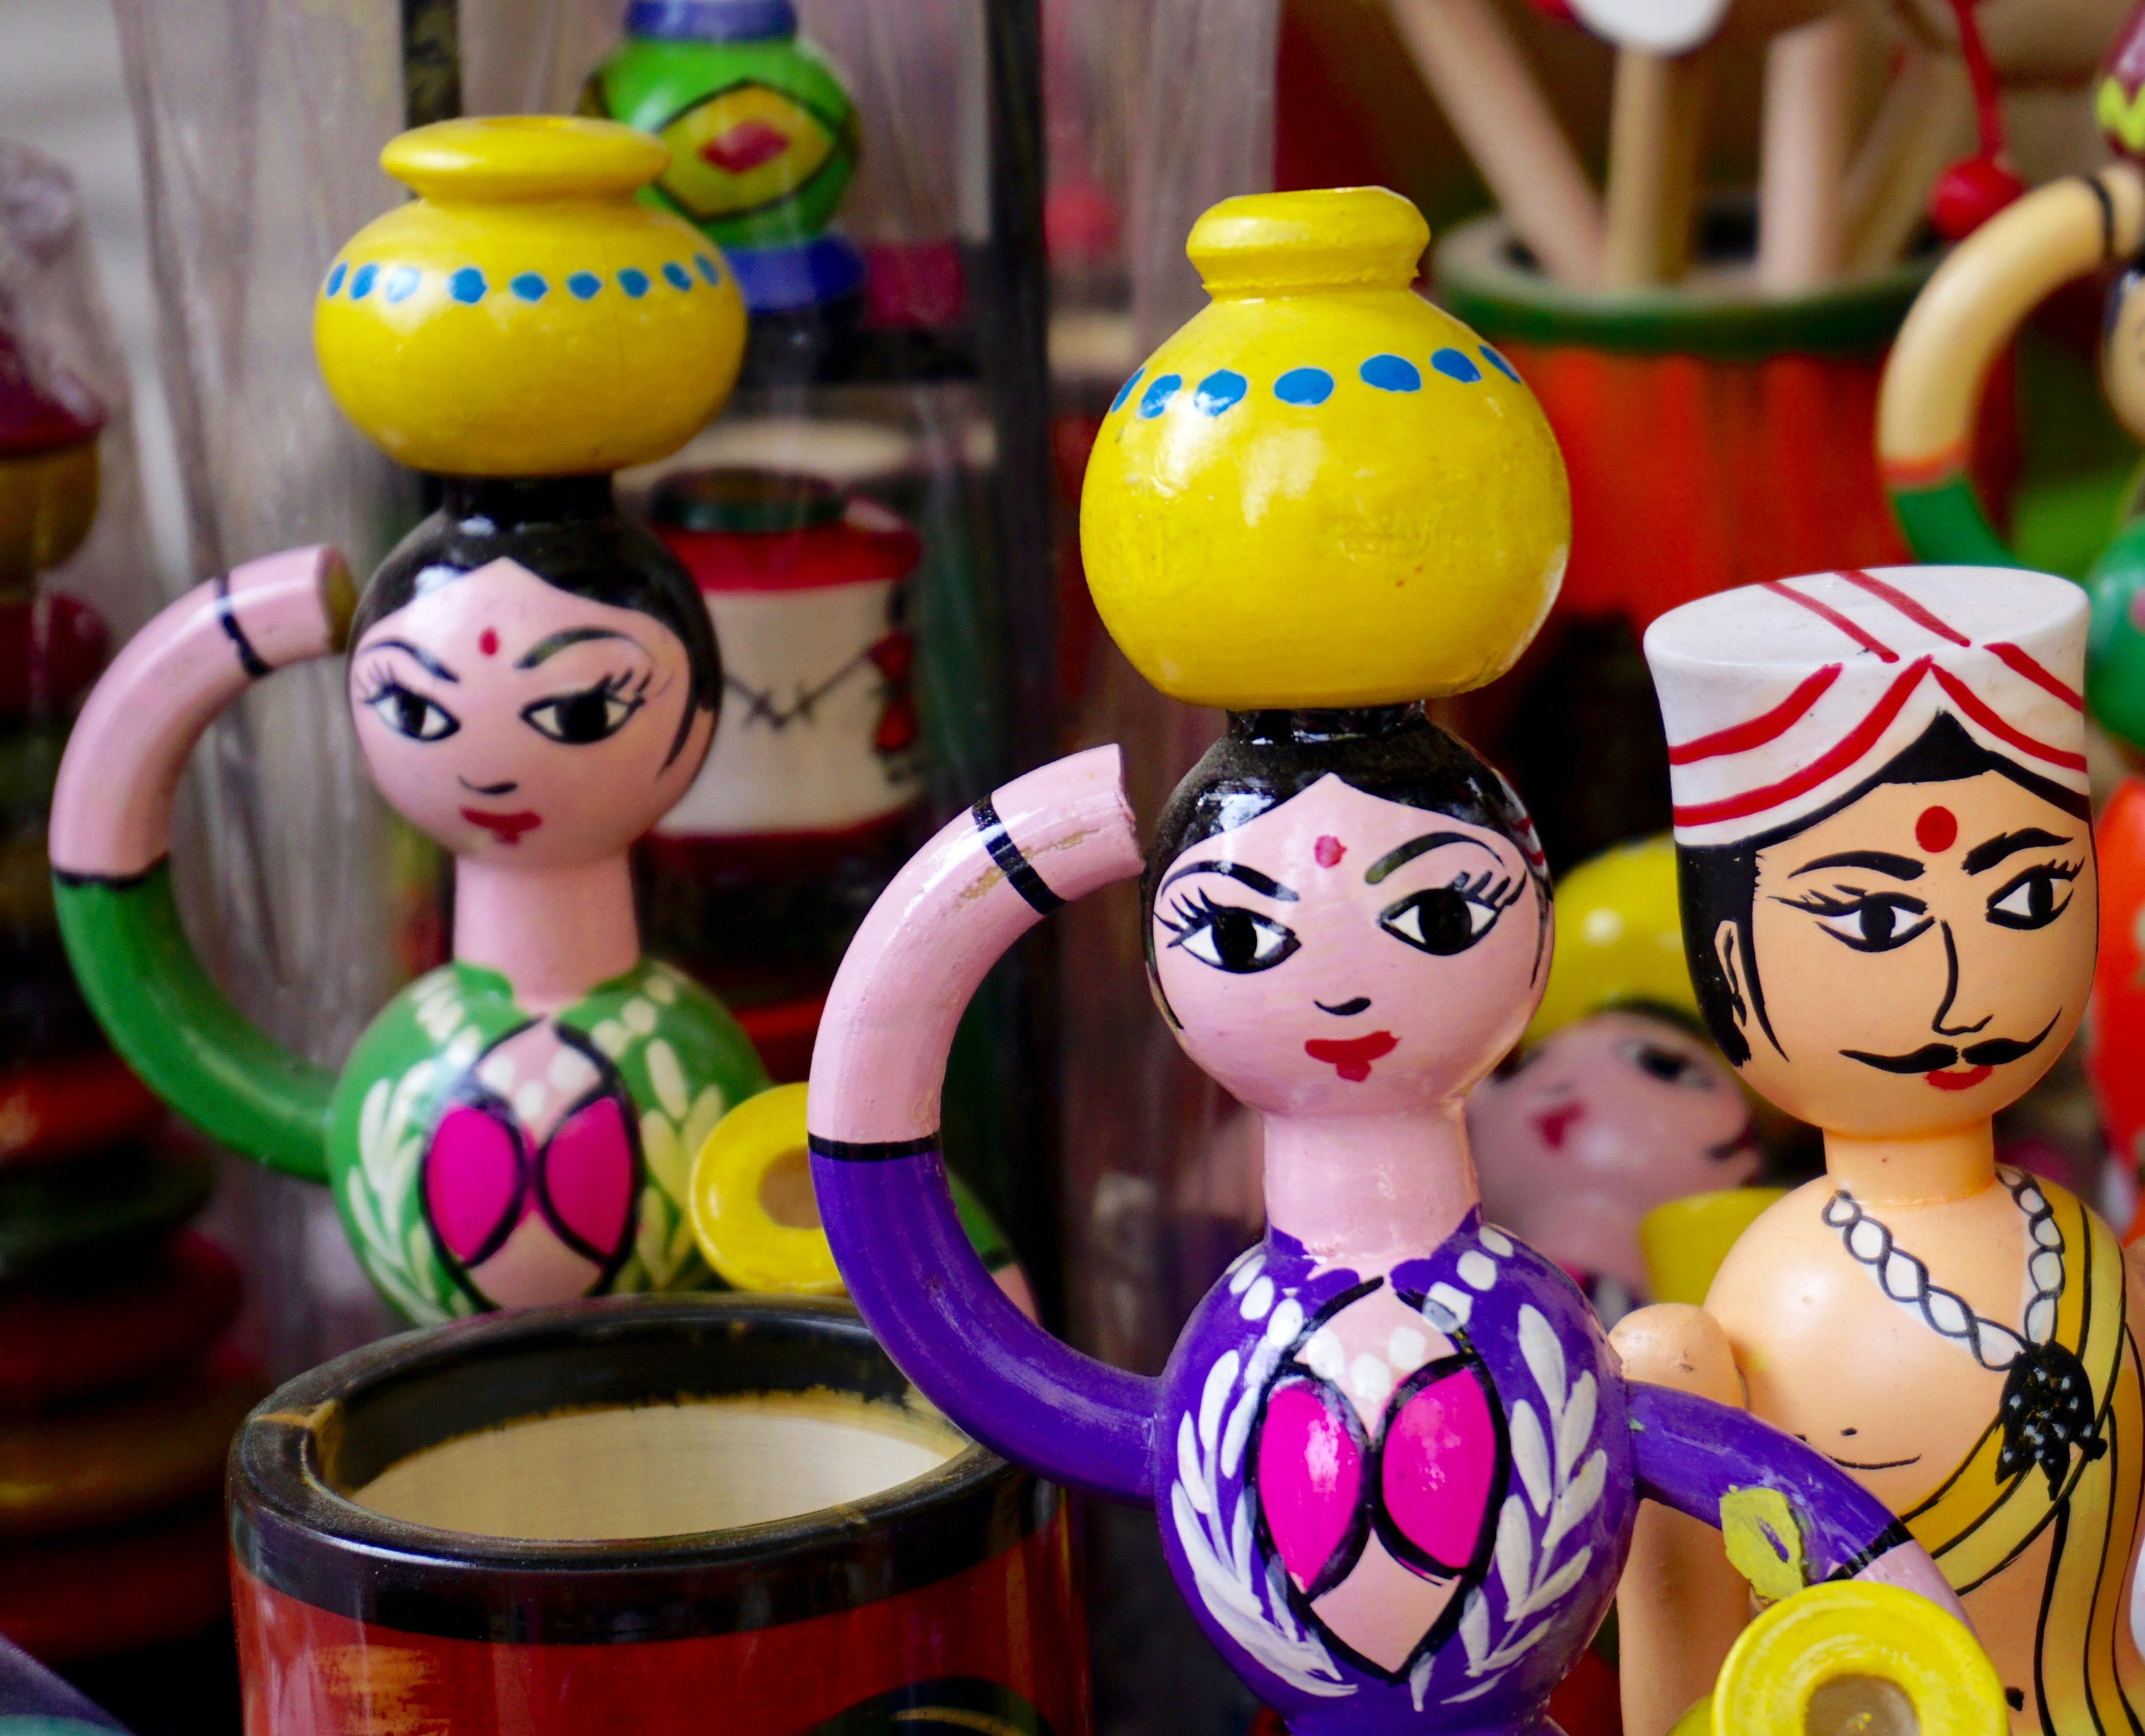 Two Women With Jars on Head Figurines